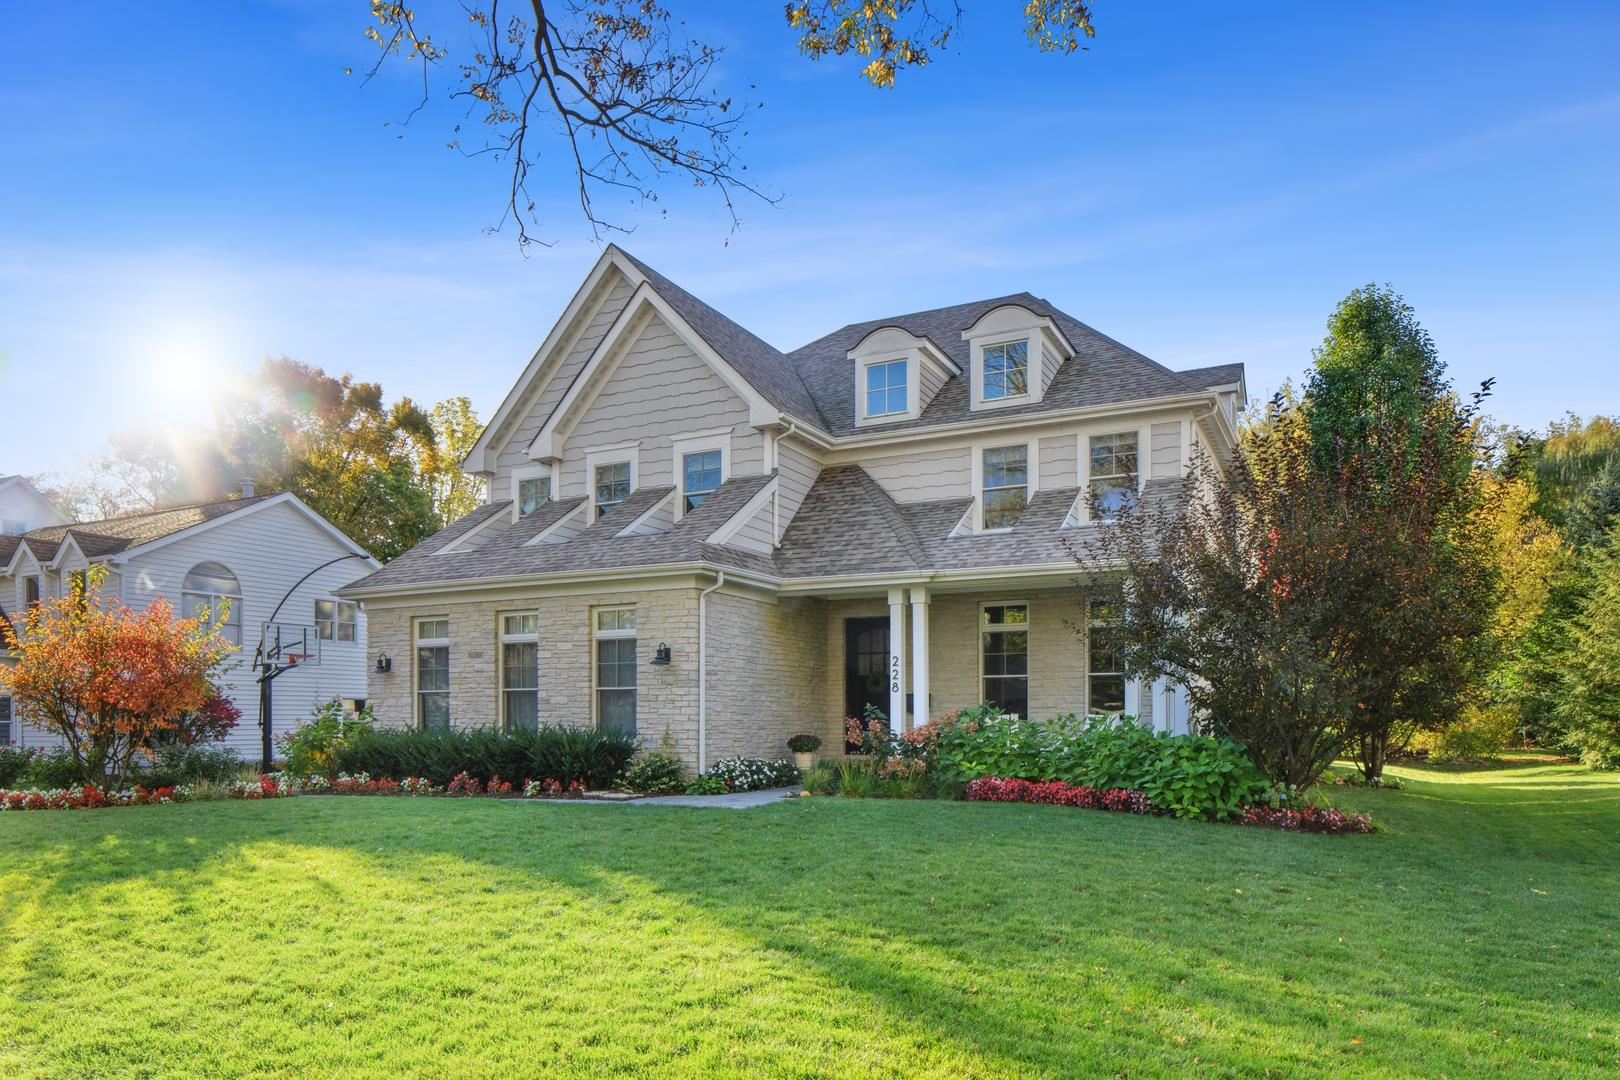 228 Fuller Road, Hinsdale, IL 60521 - #: 10999327